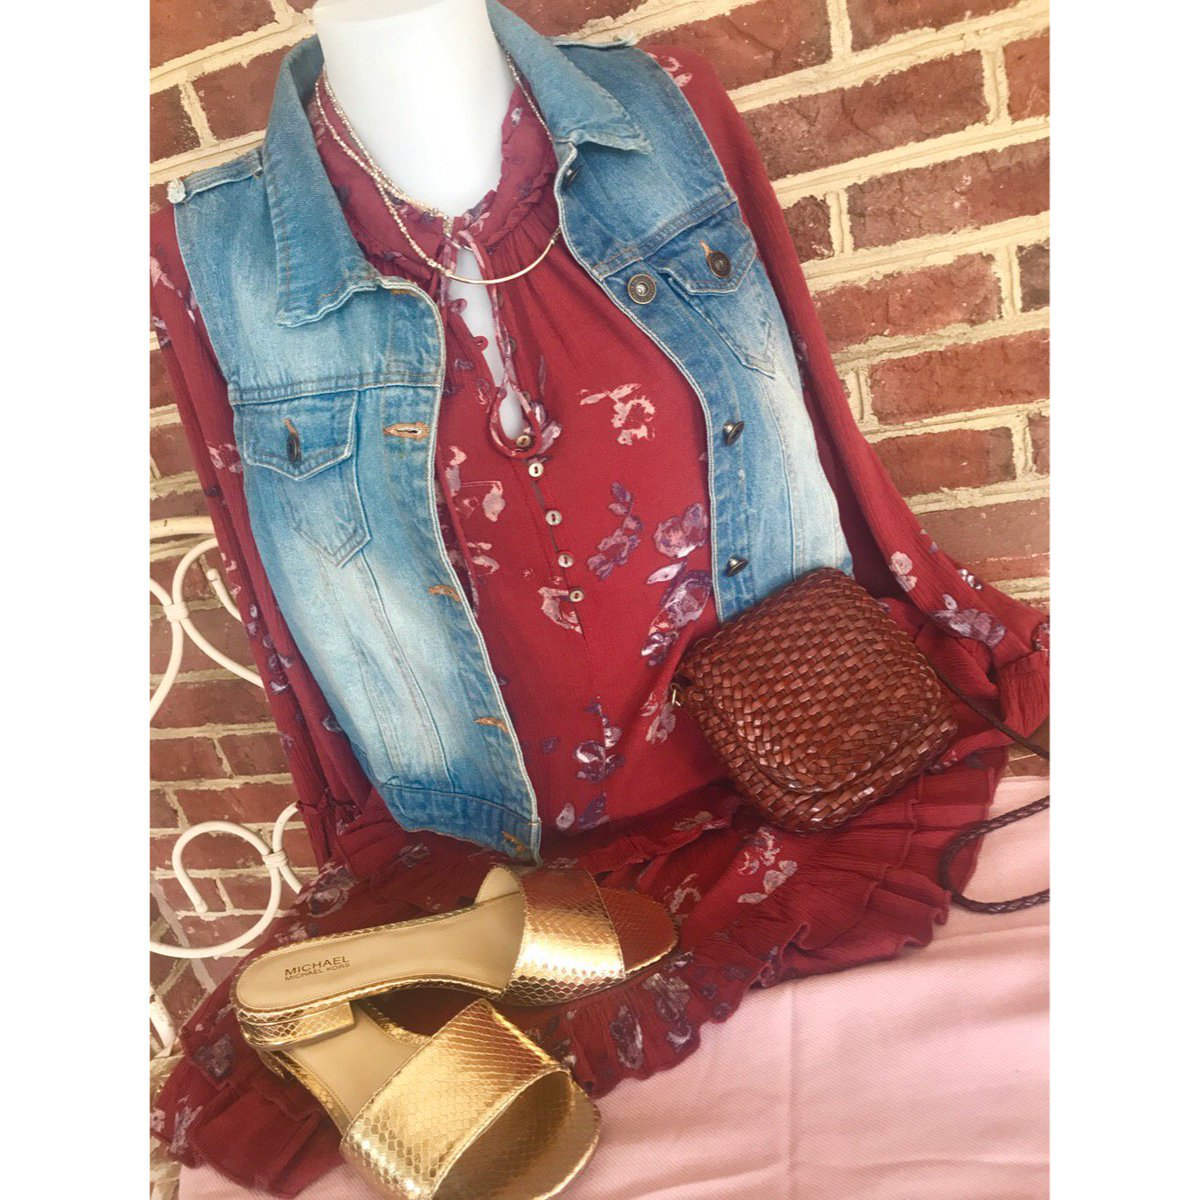 Shirt: Free People, Size M, $24 Purse: Cole Haan, $89.60 Shoes: Michael  Kors, Size 7, $46 Necklace: $16 #rva #vcu #rvafashion  #shoplocalrvapic.twitter.com/ ...